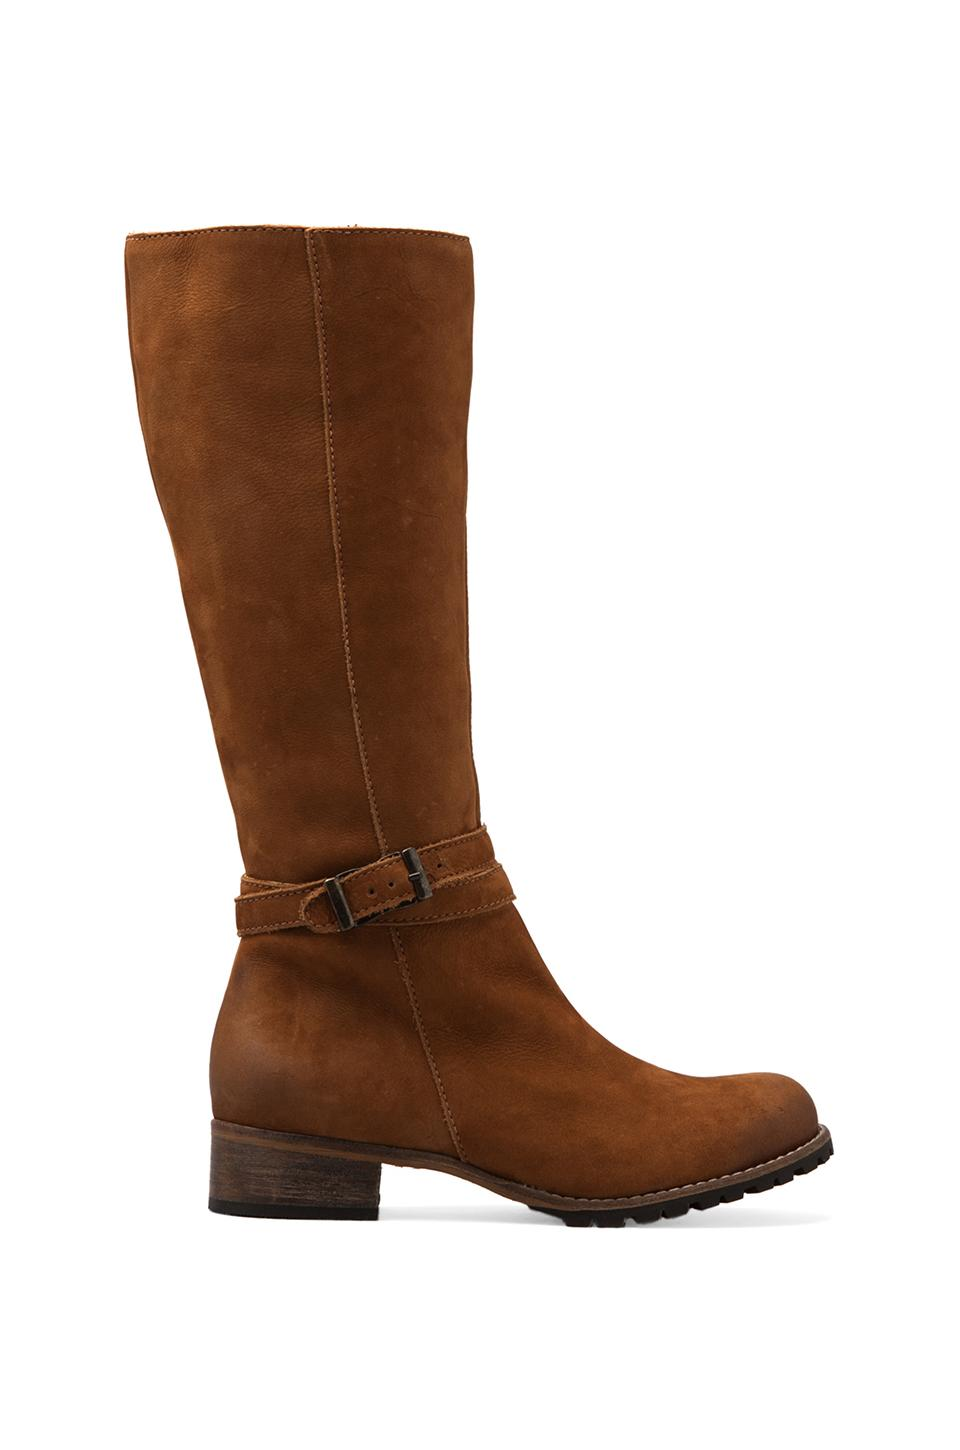 Matisse Younger Boot in Tan